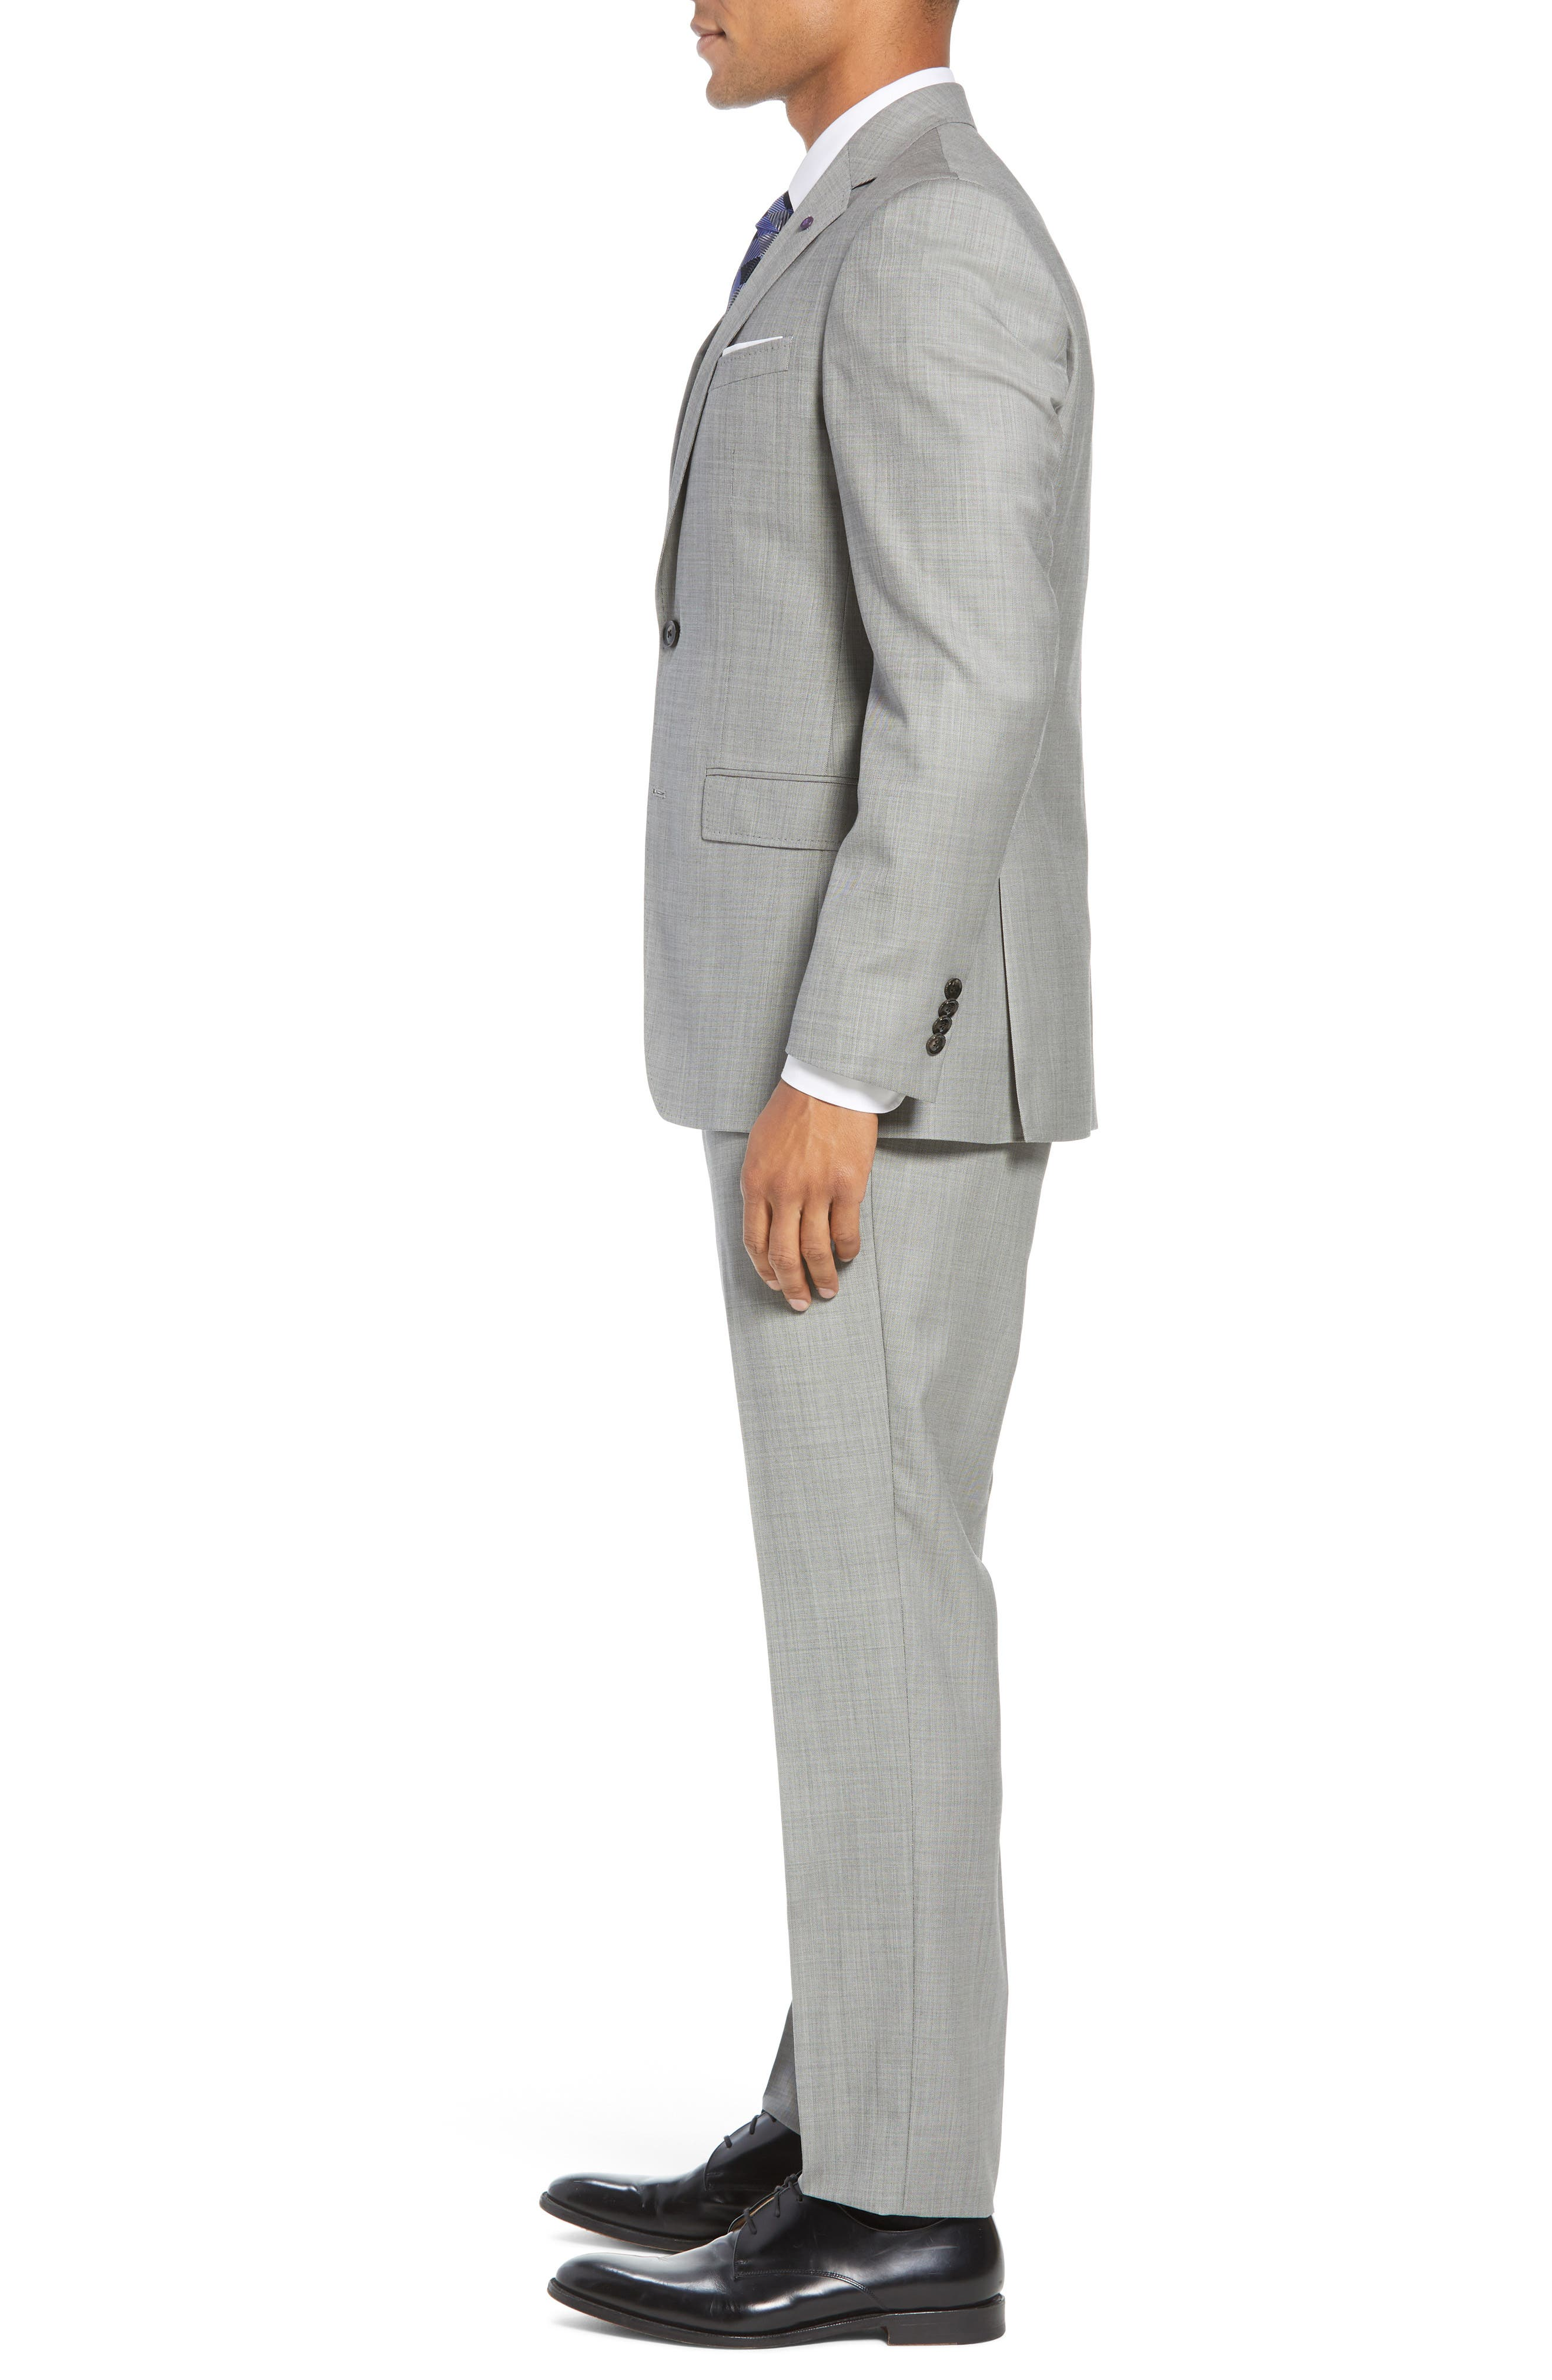 TED BAKER LONDON, Jay Trim Fit Solid Wool Suit, Alternate thumbnail 3, color, LIGHT GREY